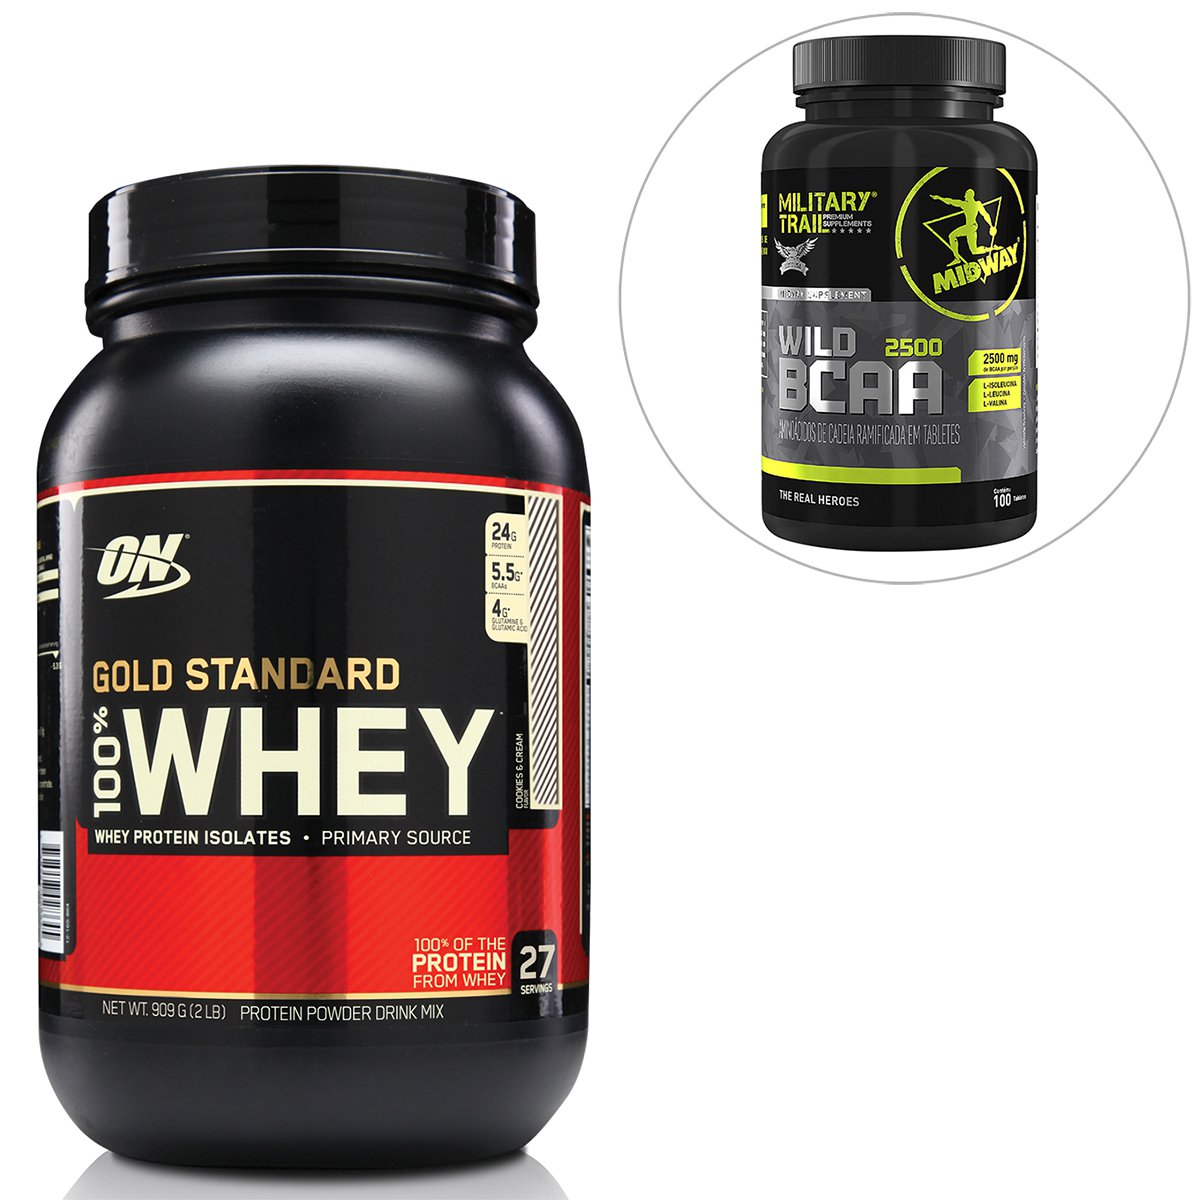 26a493e11 Kit 100% Whey Gold Standard 2 Lbs - Optimum Nutrition + BCAA Wild 100 Tabs  Military Trail – Midway